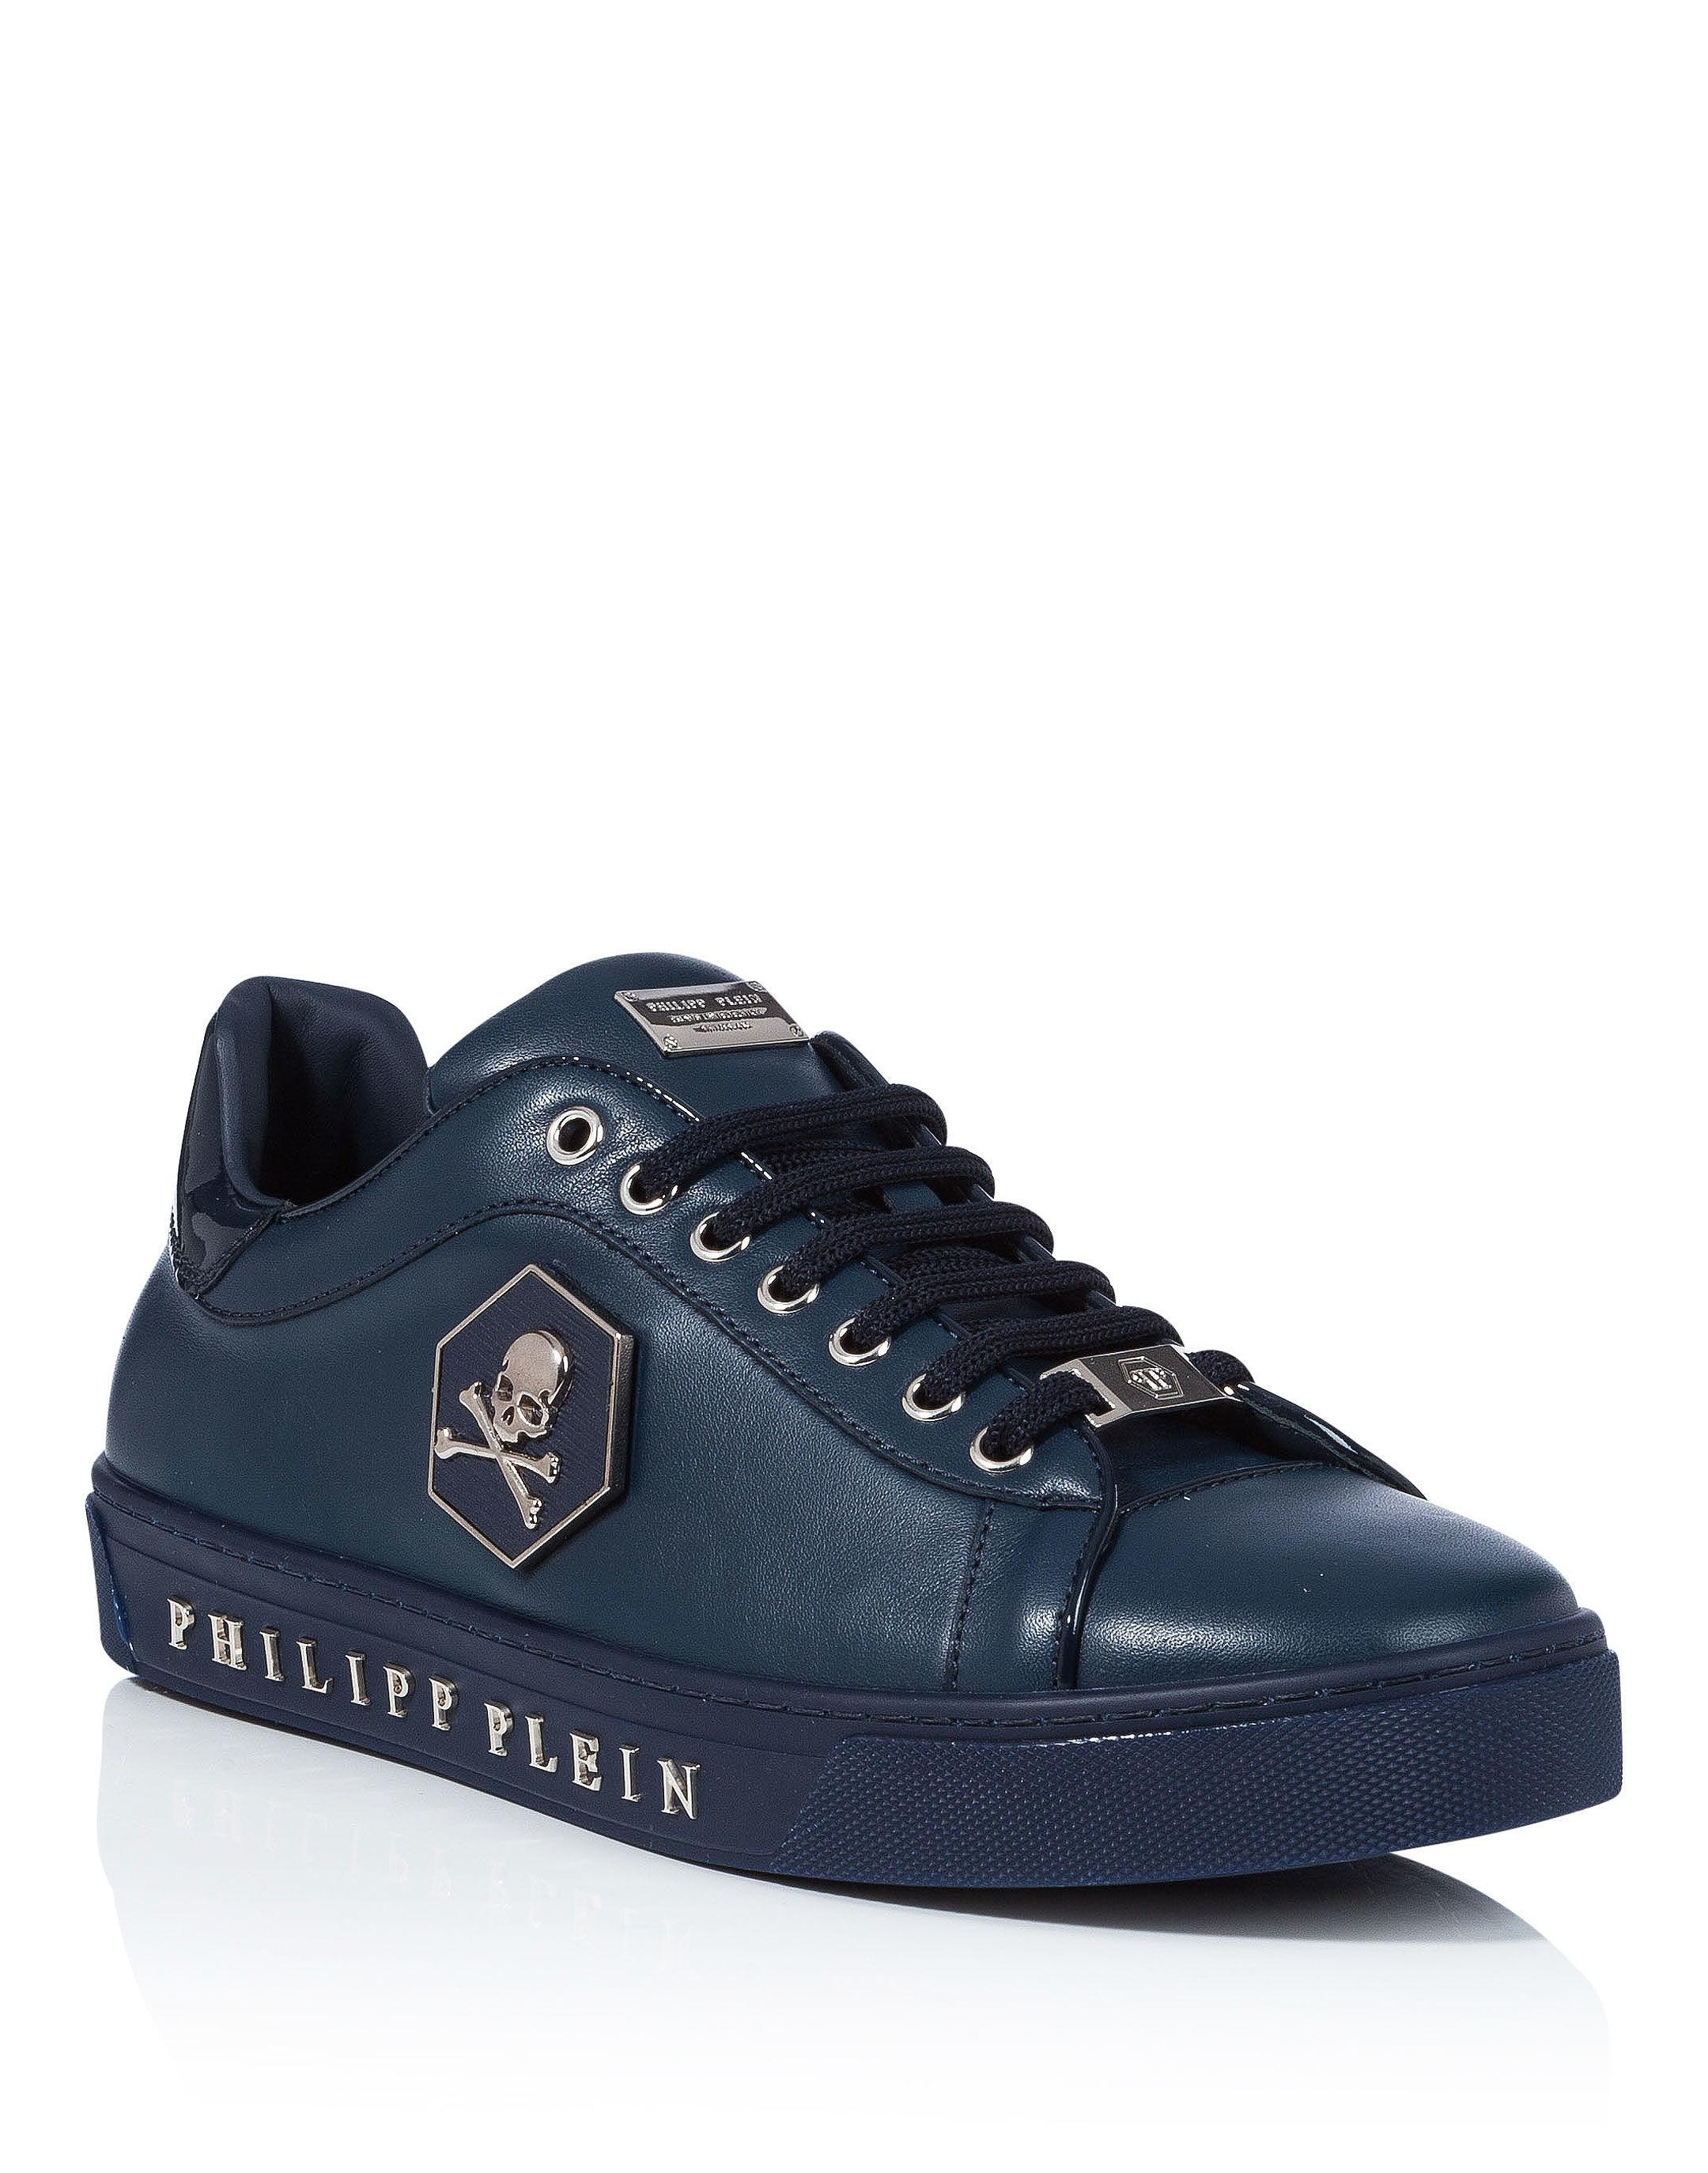 Philipp Plein Only In Your Mind sneakers buy cheap geniue stockist discount perfect sale amazon for sale official site qx9ur